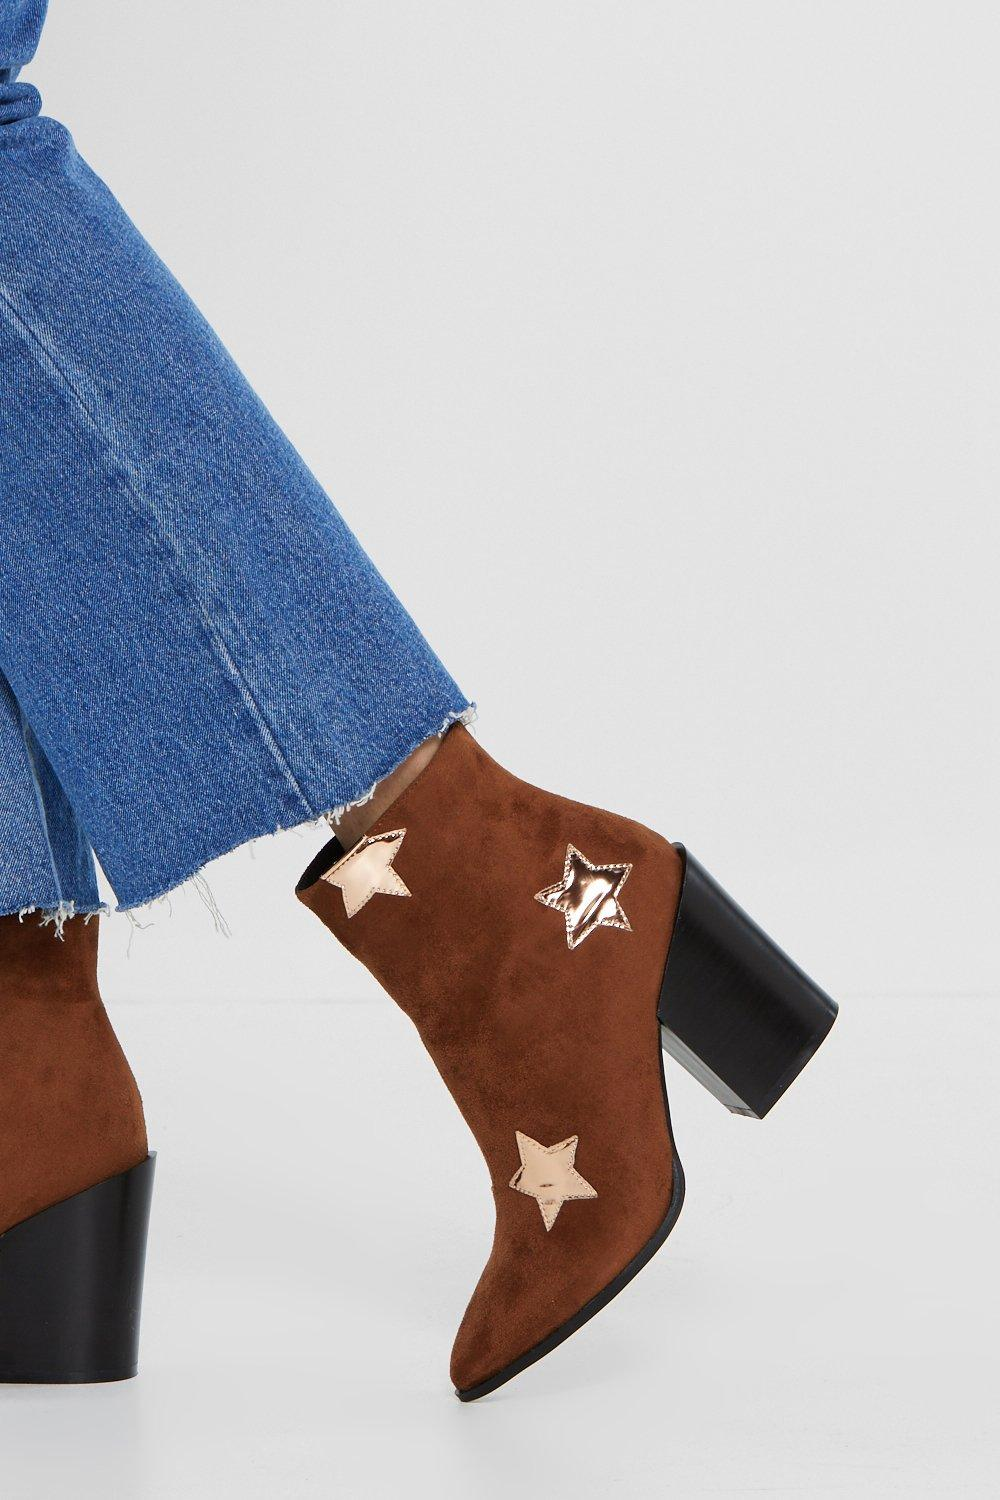 31b25c225fe6 ... High the Moon Star Ankle Boot. Hover to zoom